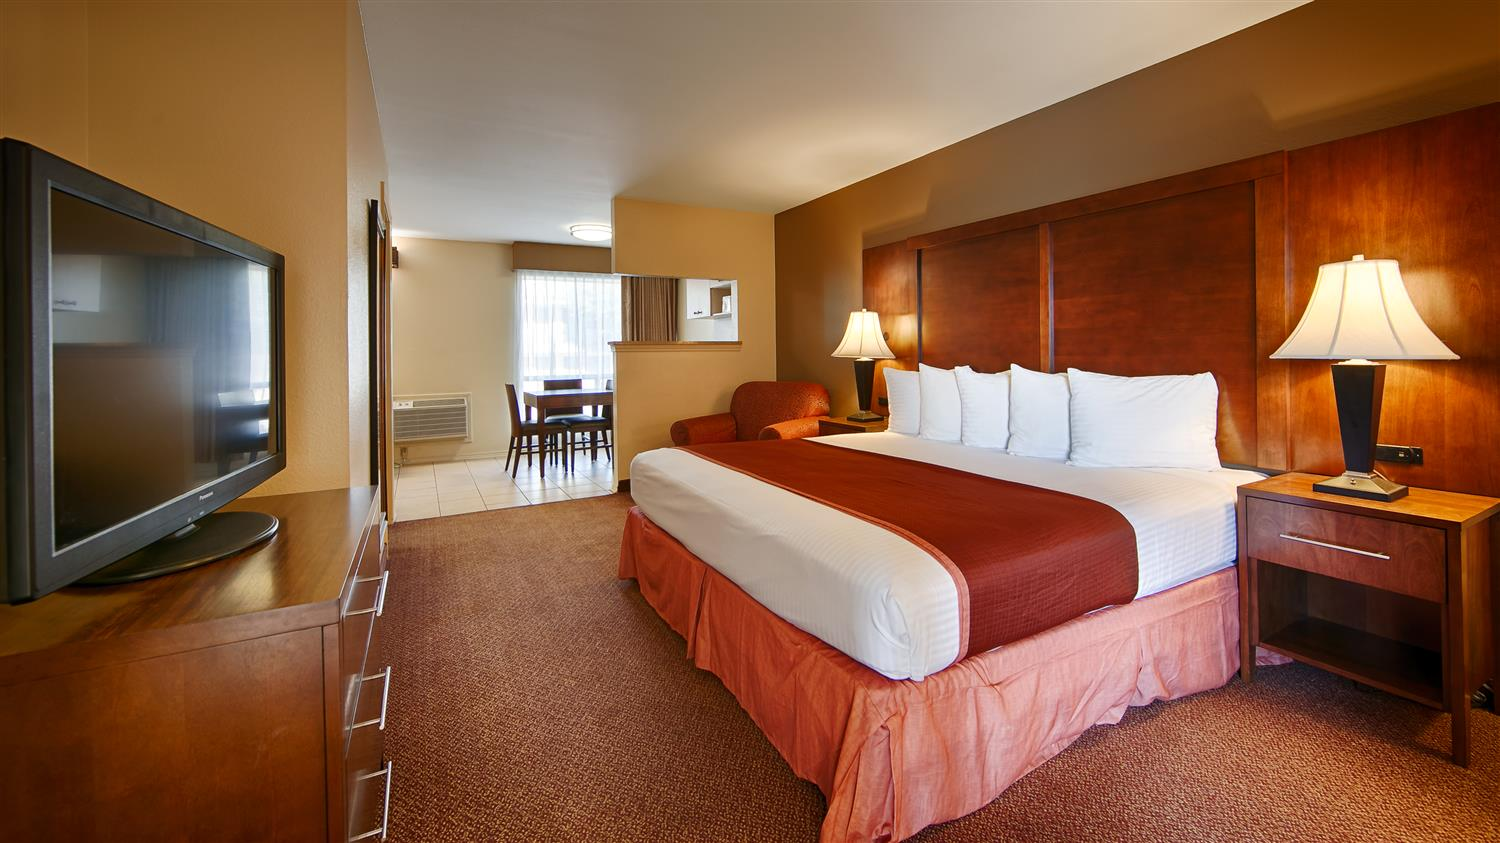 Our Family Suite Has Two Bedrooms First Bedroom A King Bed And Second Queen Beds